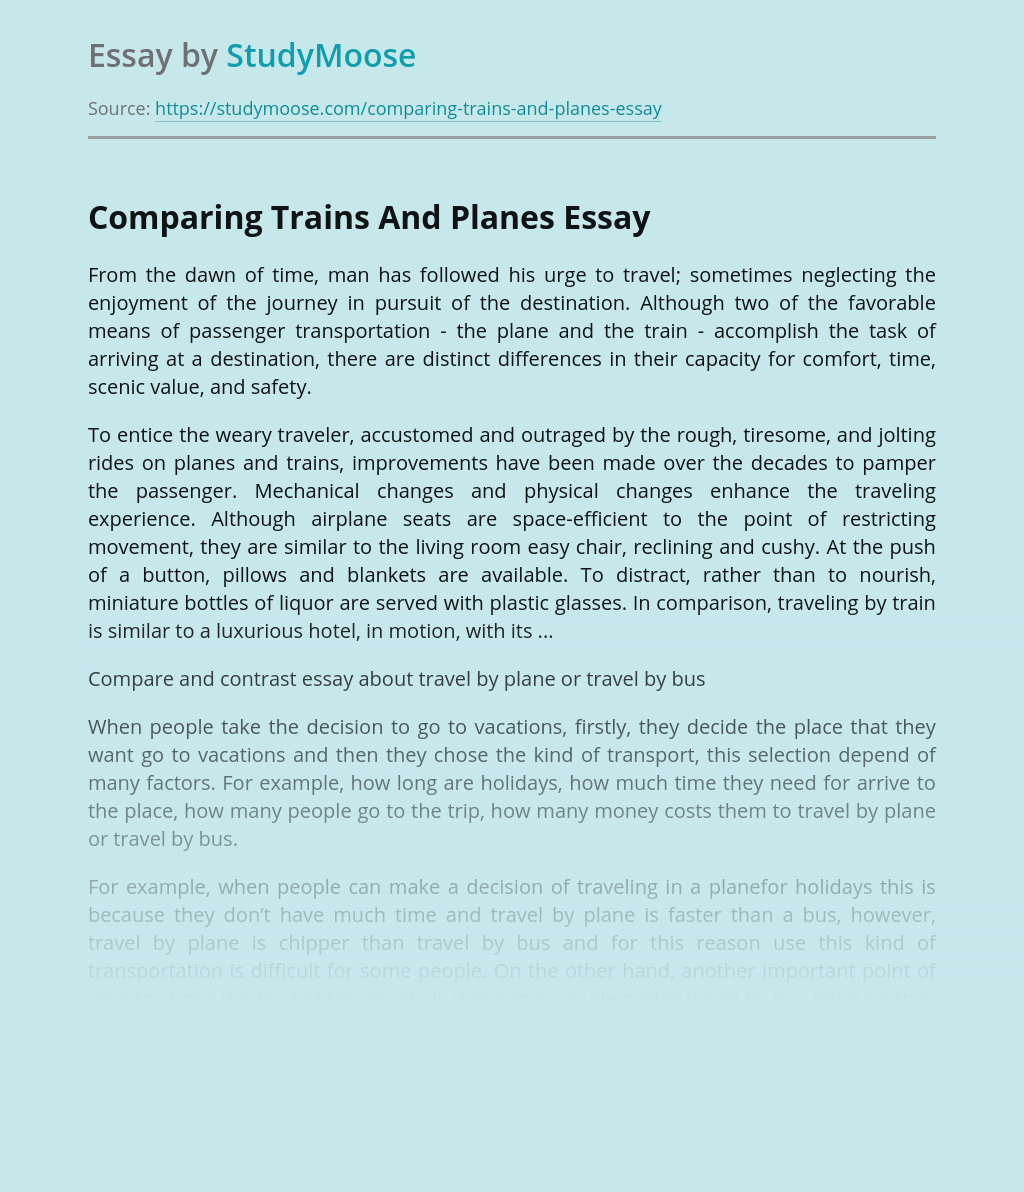 Comparing Trains And Planes